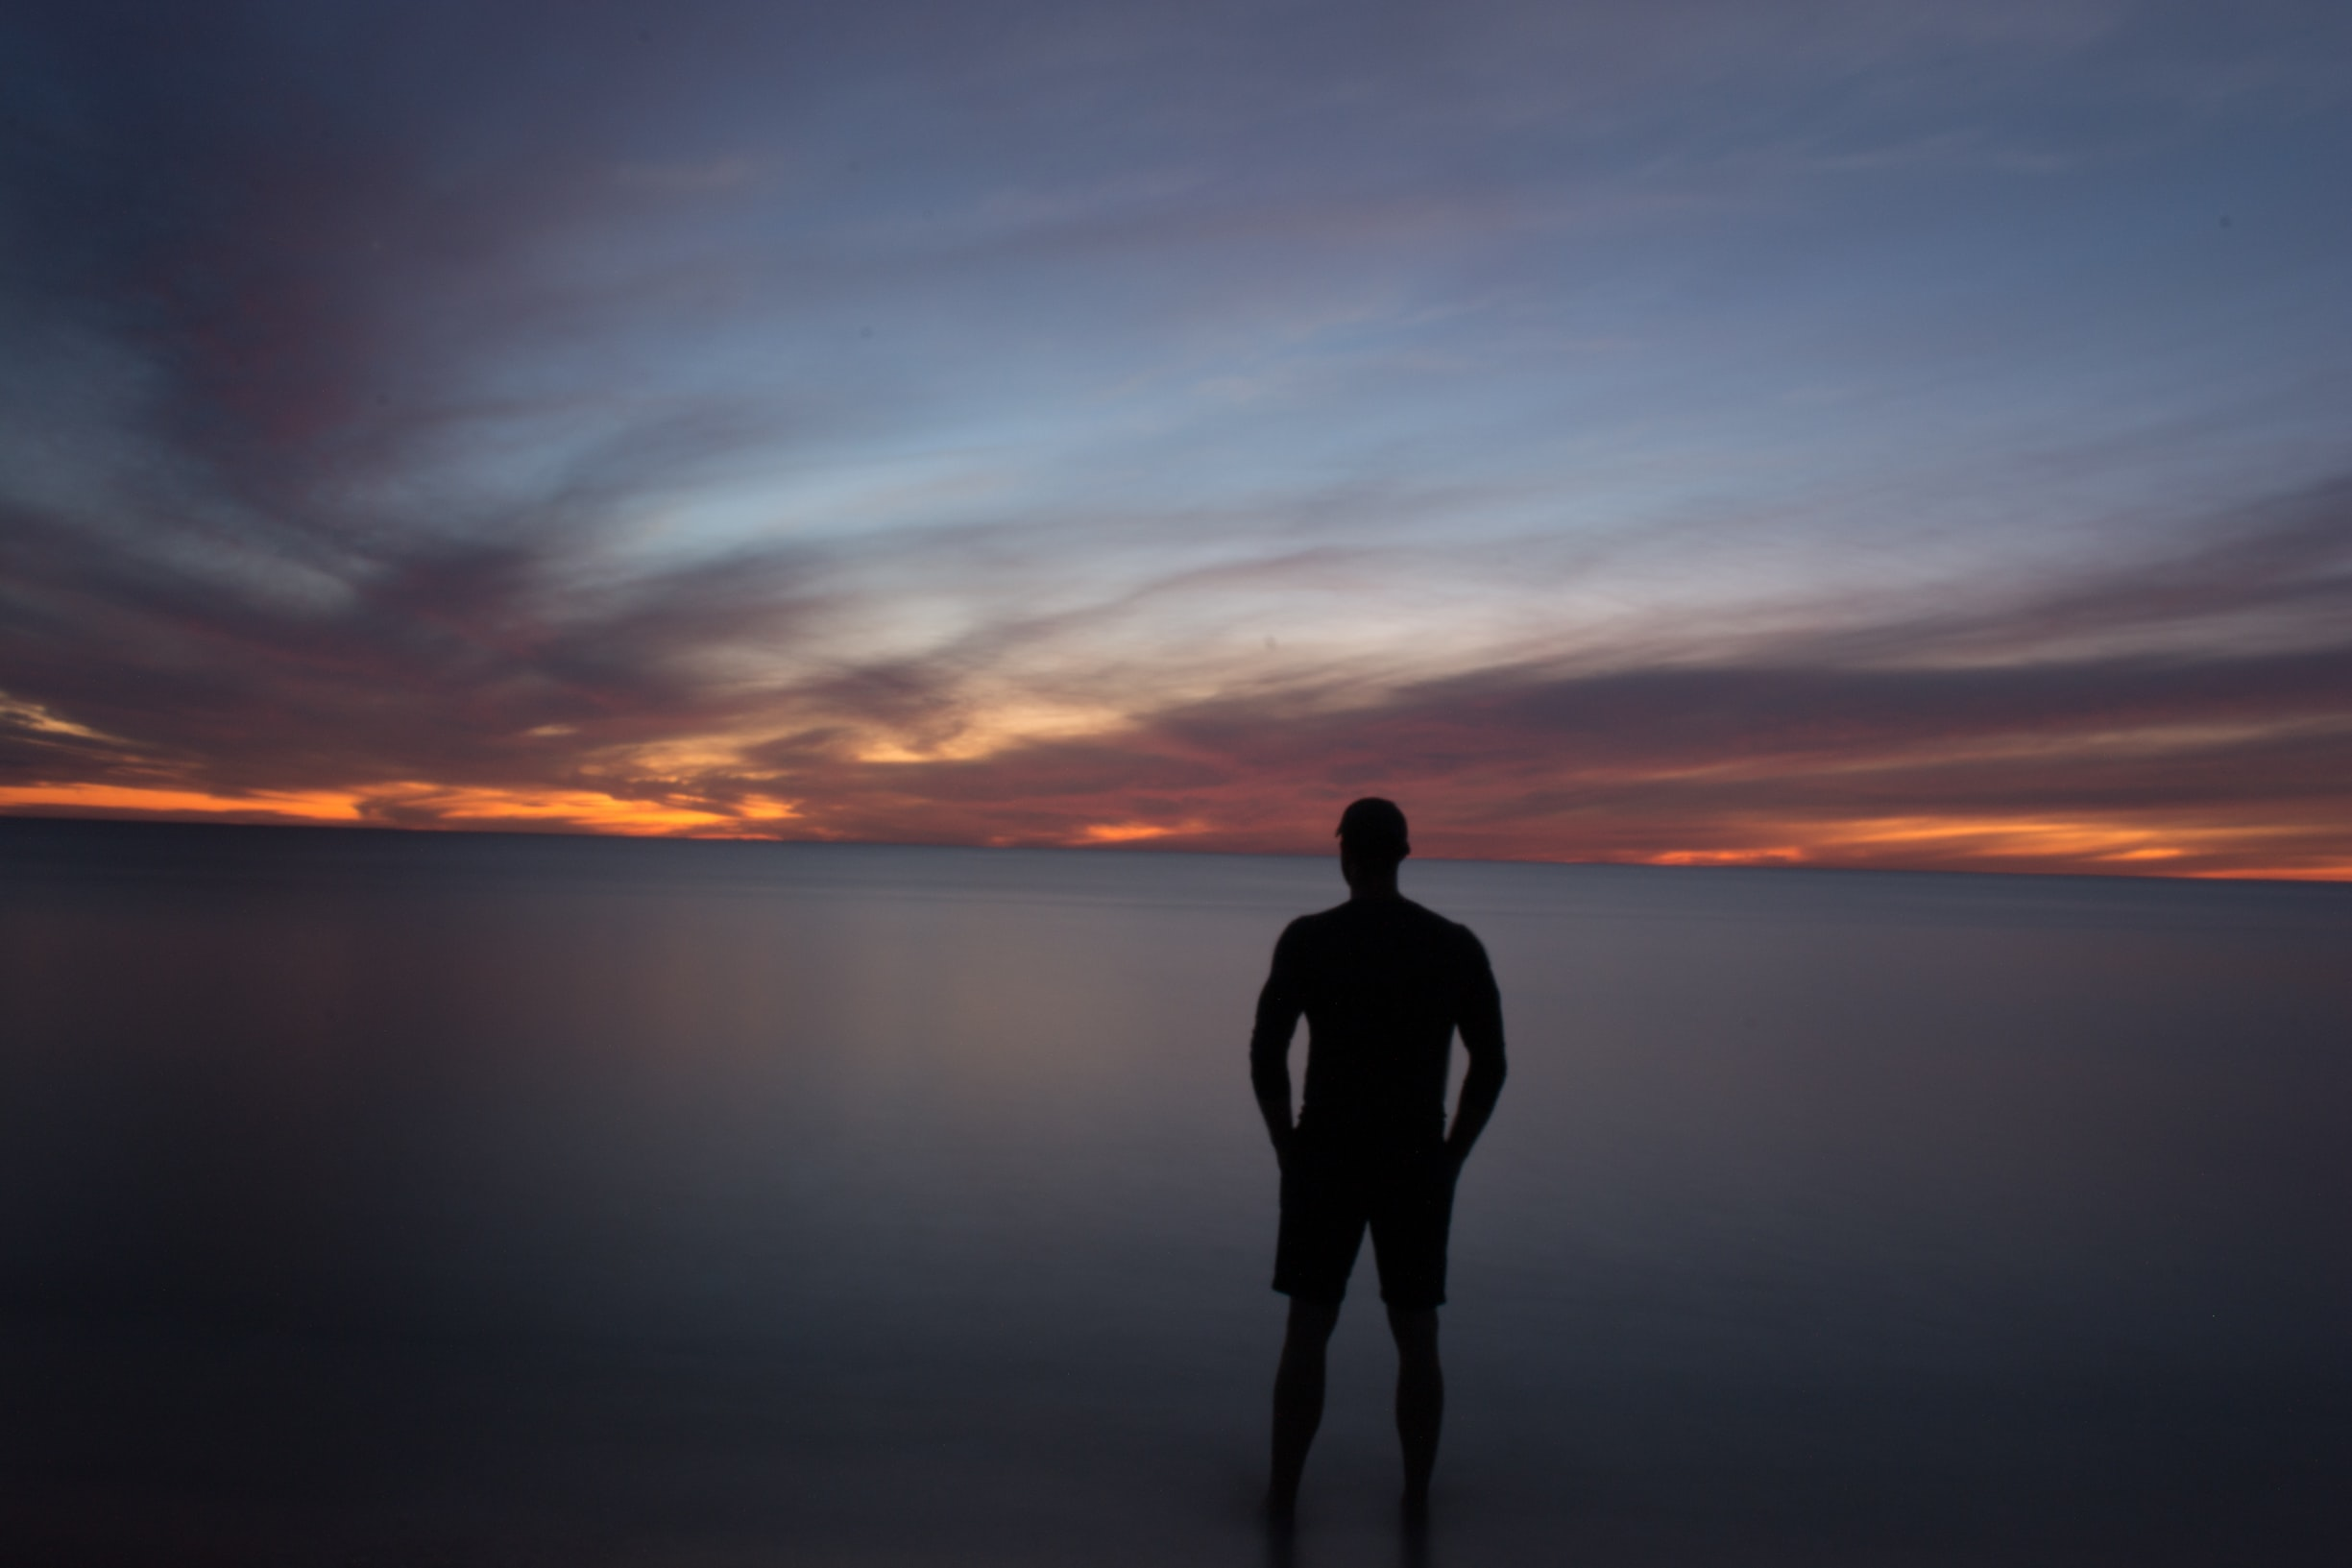 Silhouette of a man standing in calm waters, a cloudy blue and orange sky in the background